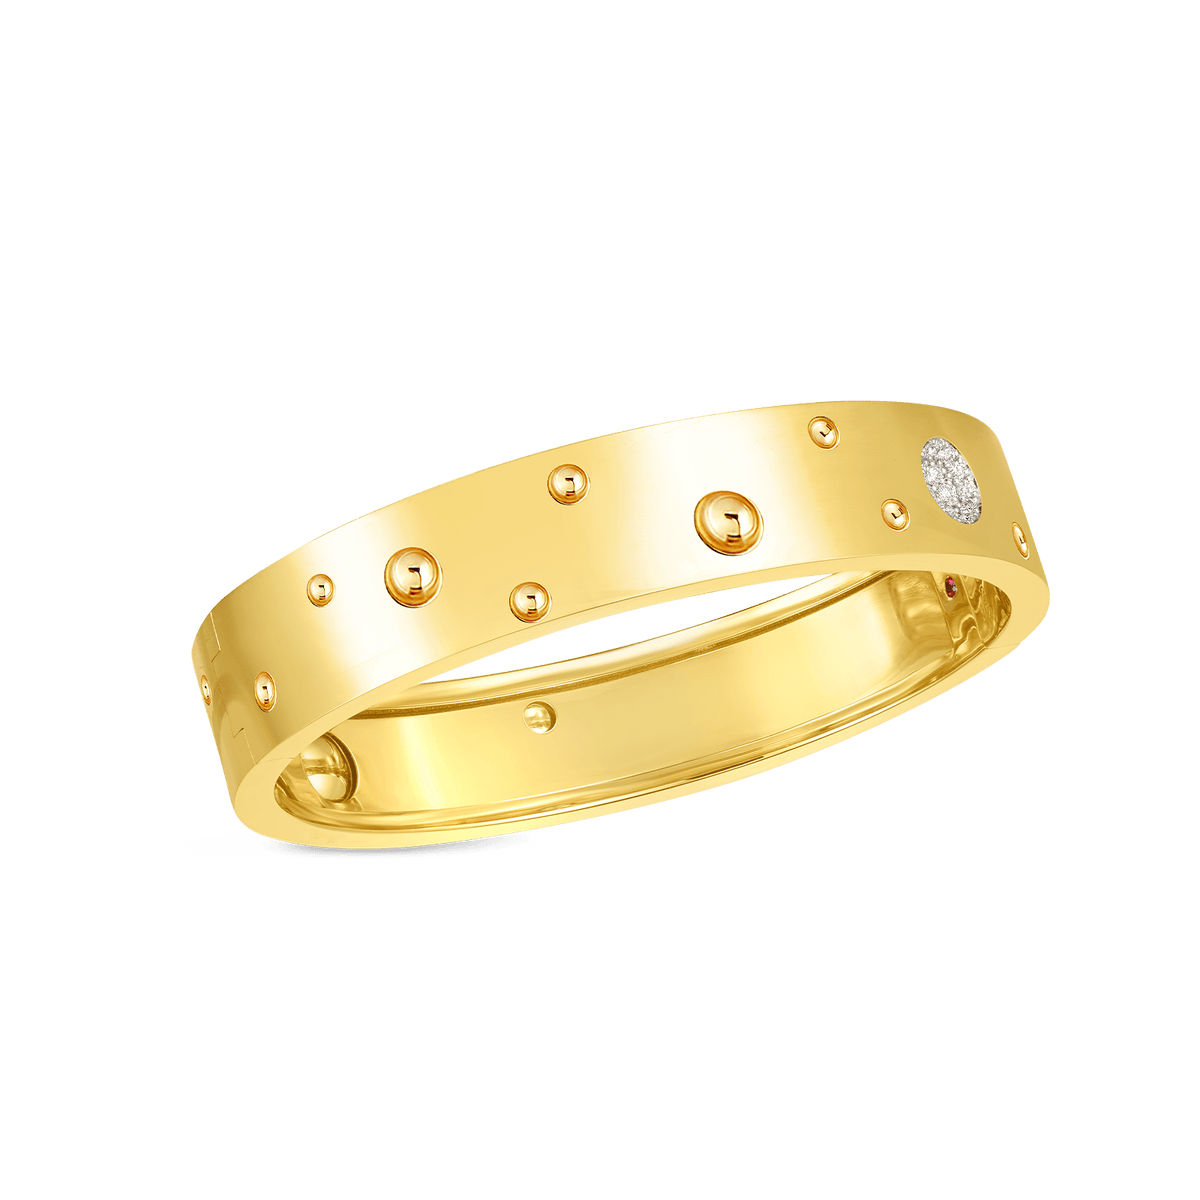 18K GOLD & DIAMOND ACCENT POIS MOI LUNA MED WIDTH BANGLE